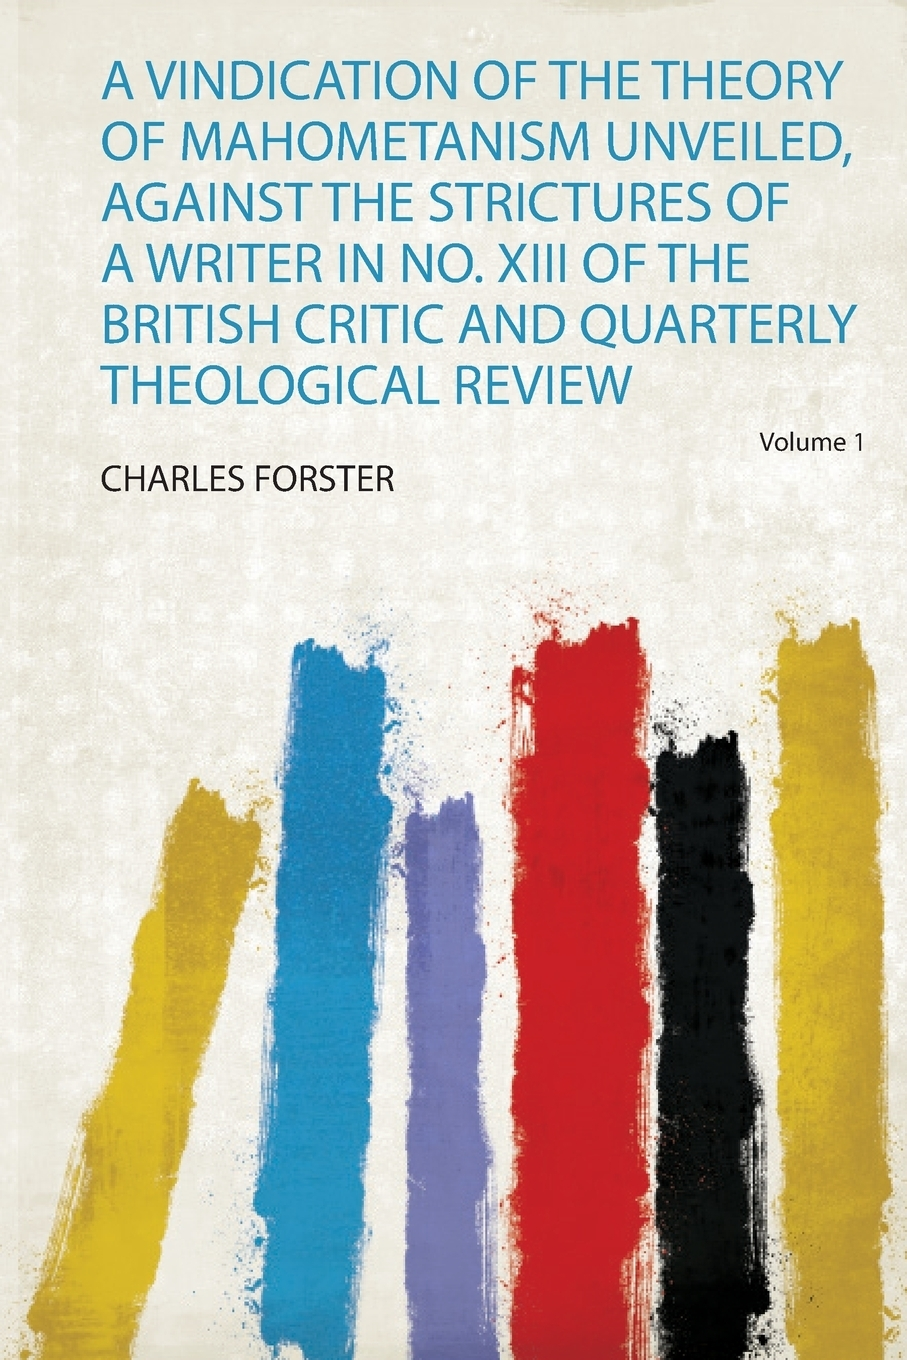 лучшая цена Charles Forster A Vindication of the Theory of Mahometanism Unveiled, Against the Strictures of a Writer in No. Xiii of the British Critic and Quarterly Theological Review